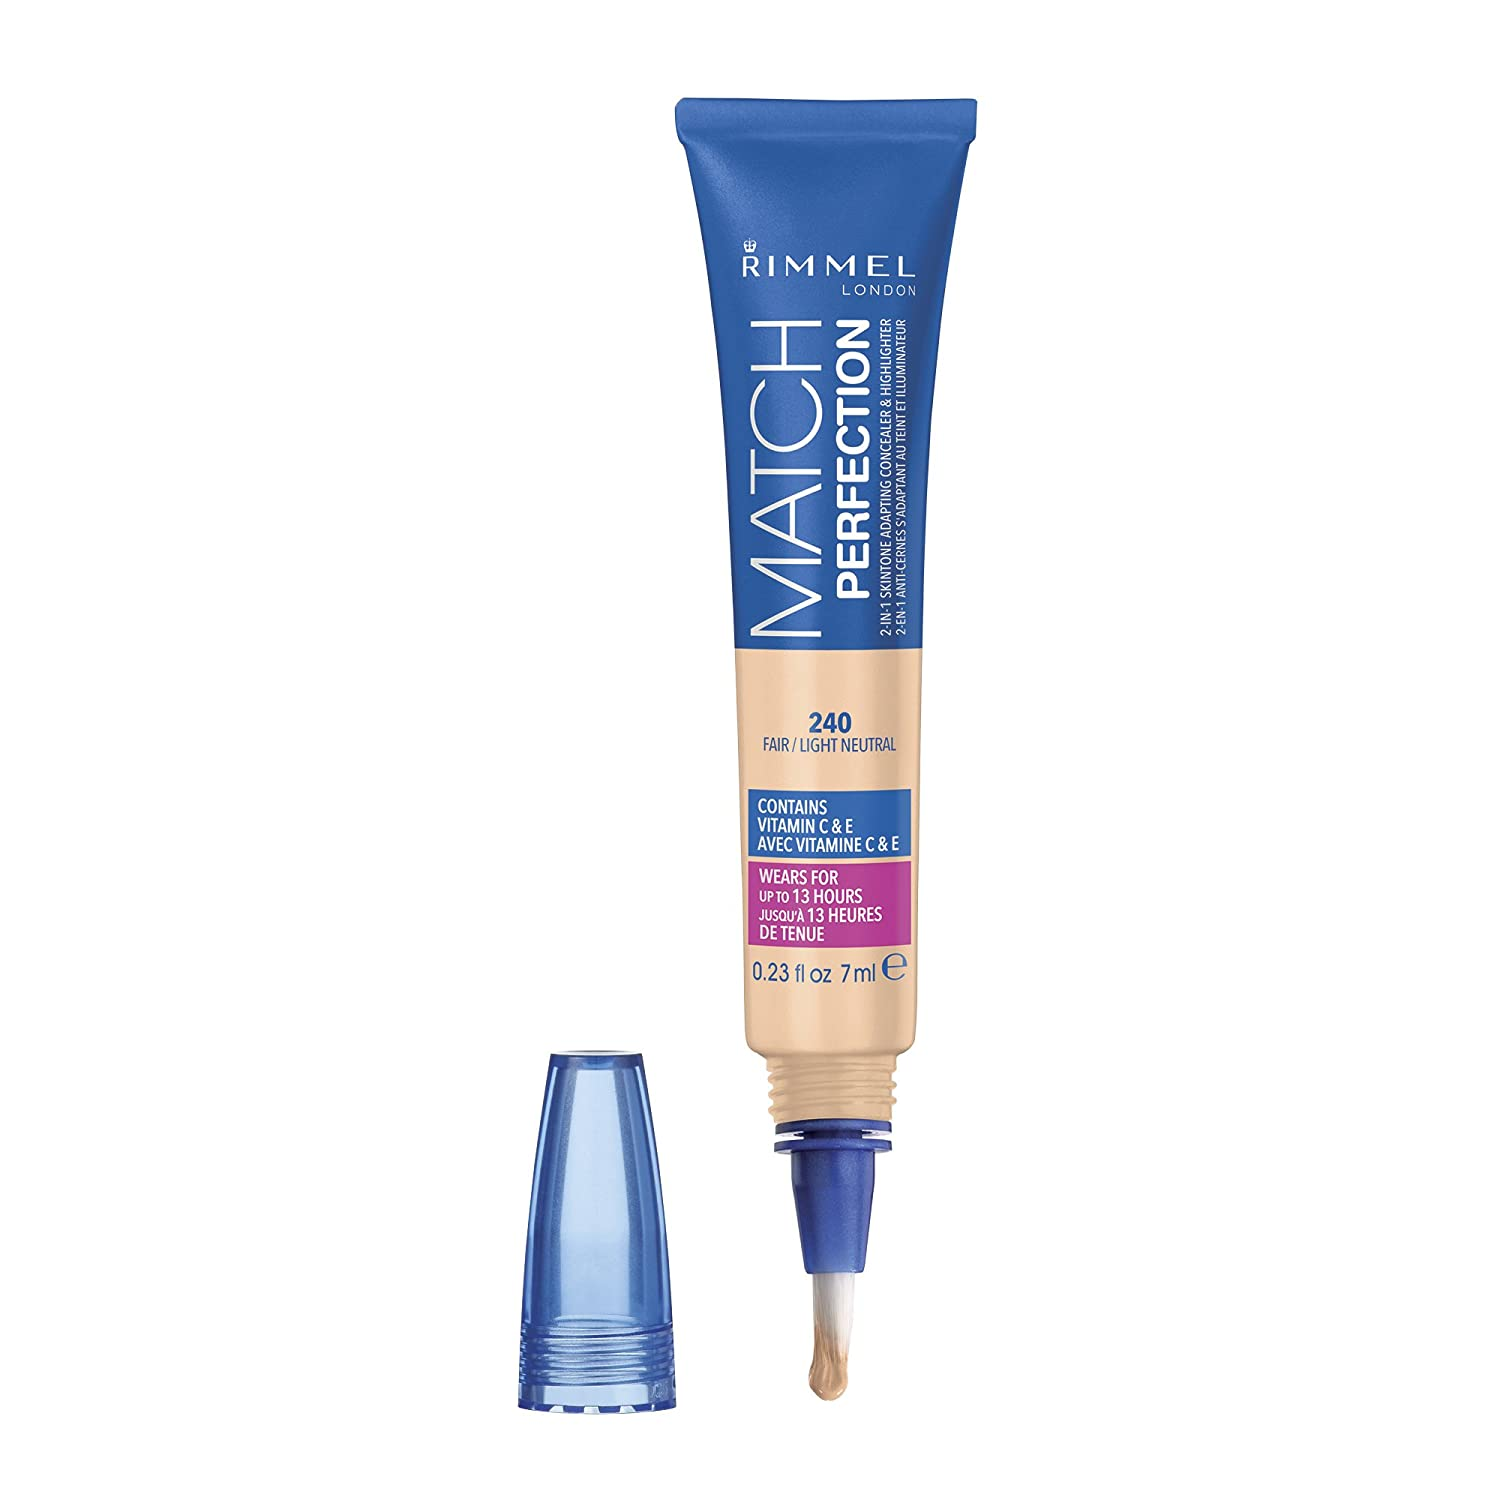 Rimmel London - Match Perfection 2-in-1 Concealer Coty